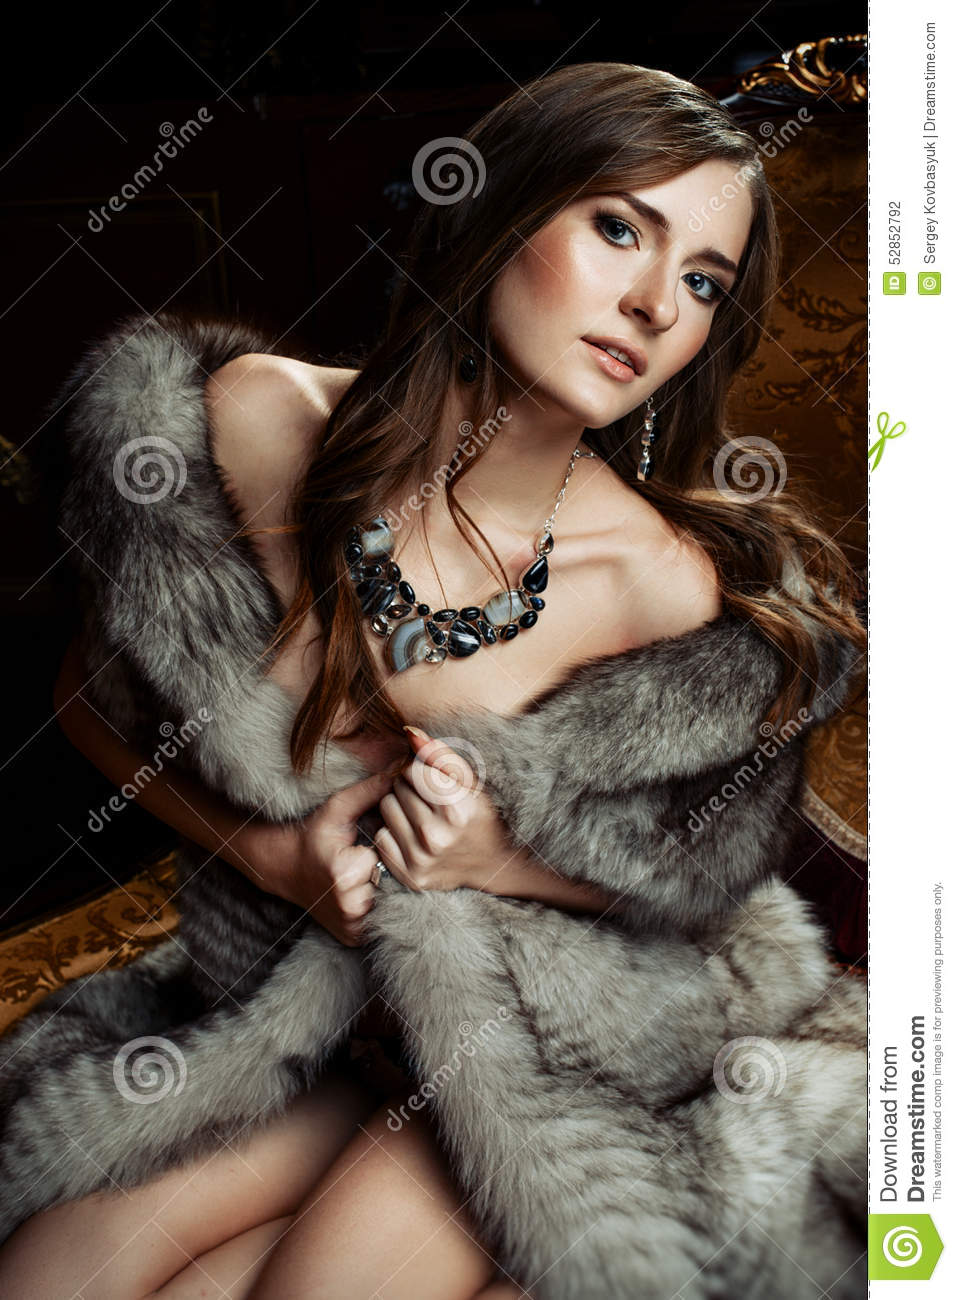 from Marlon nude woman in furs